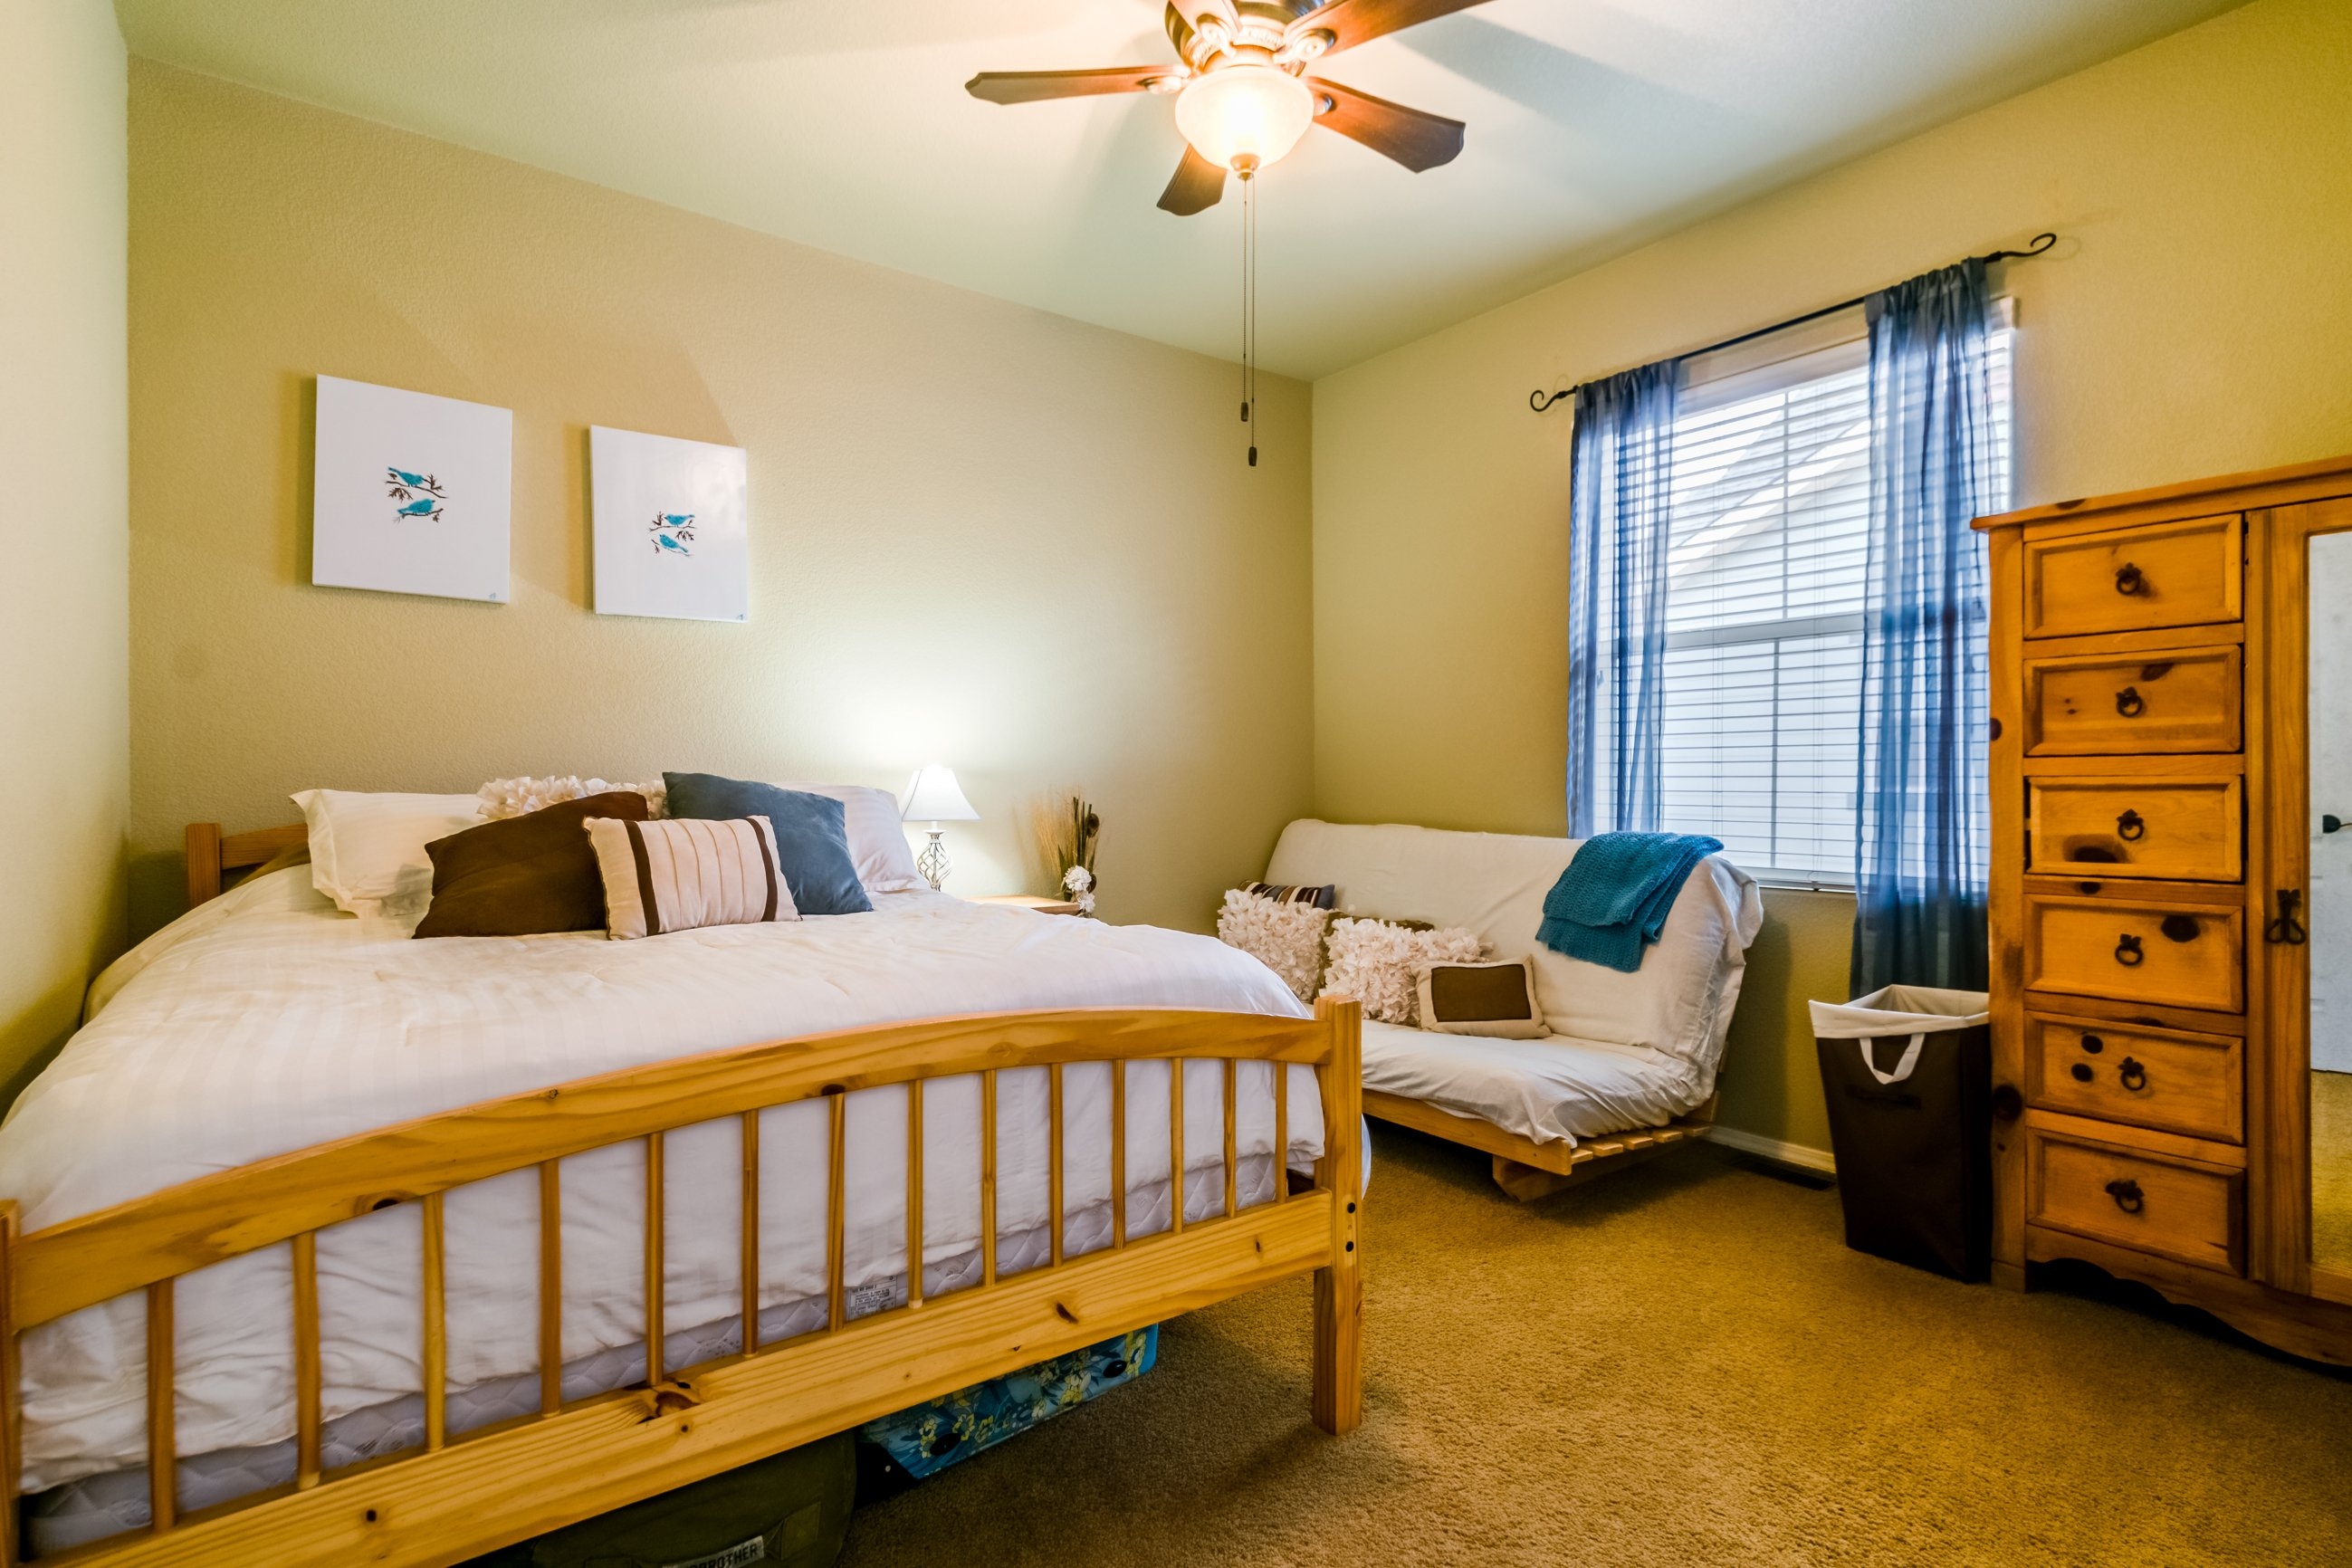 Gold Hill Mesa condo for sale, picture of bedroom